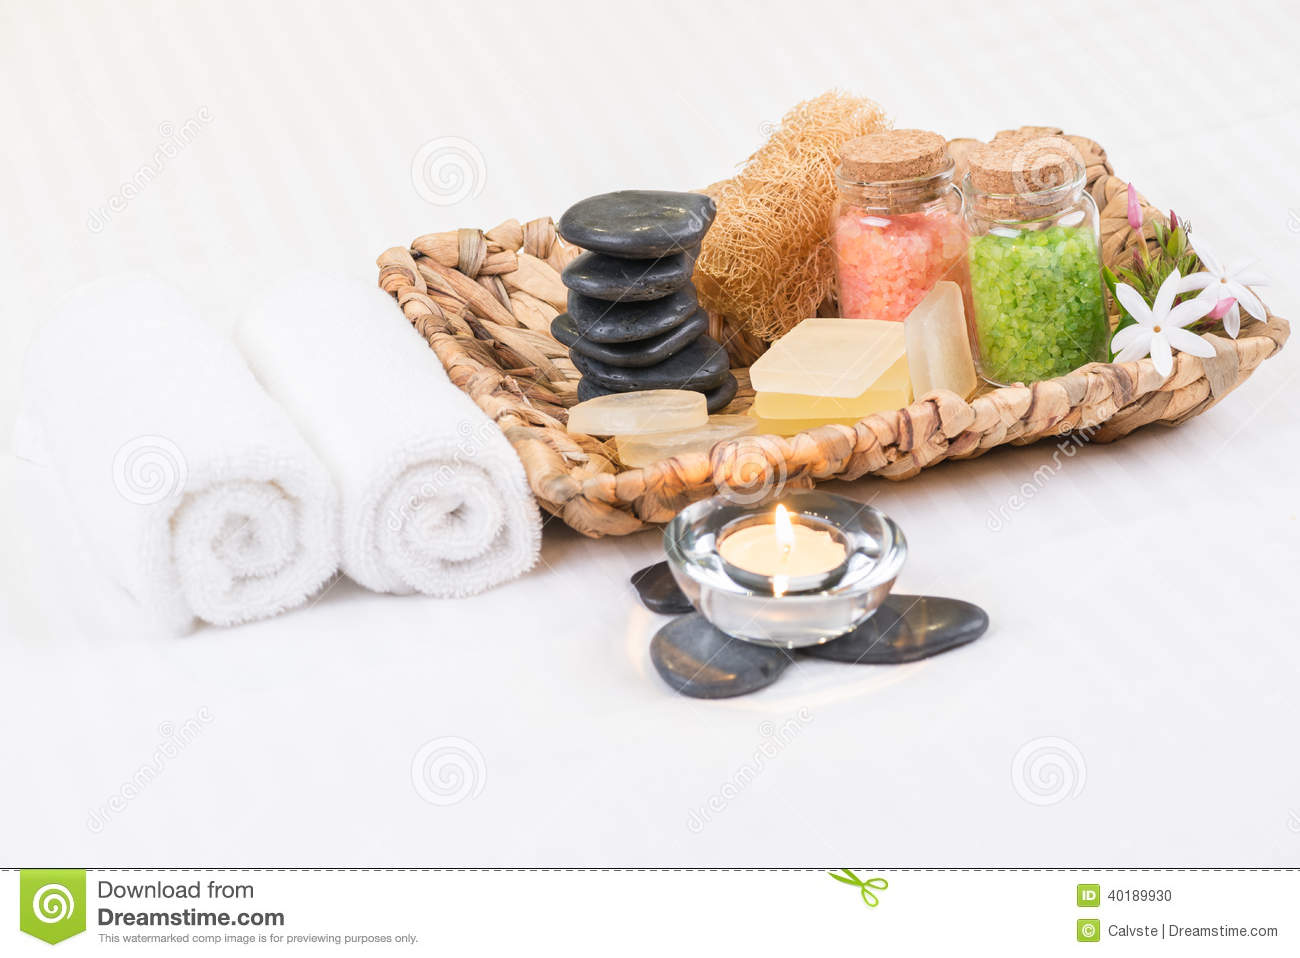 Spa amenities in a basket close-up